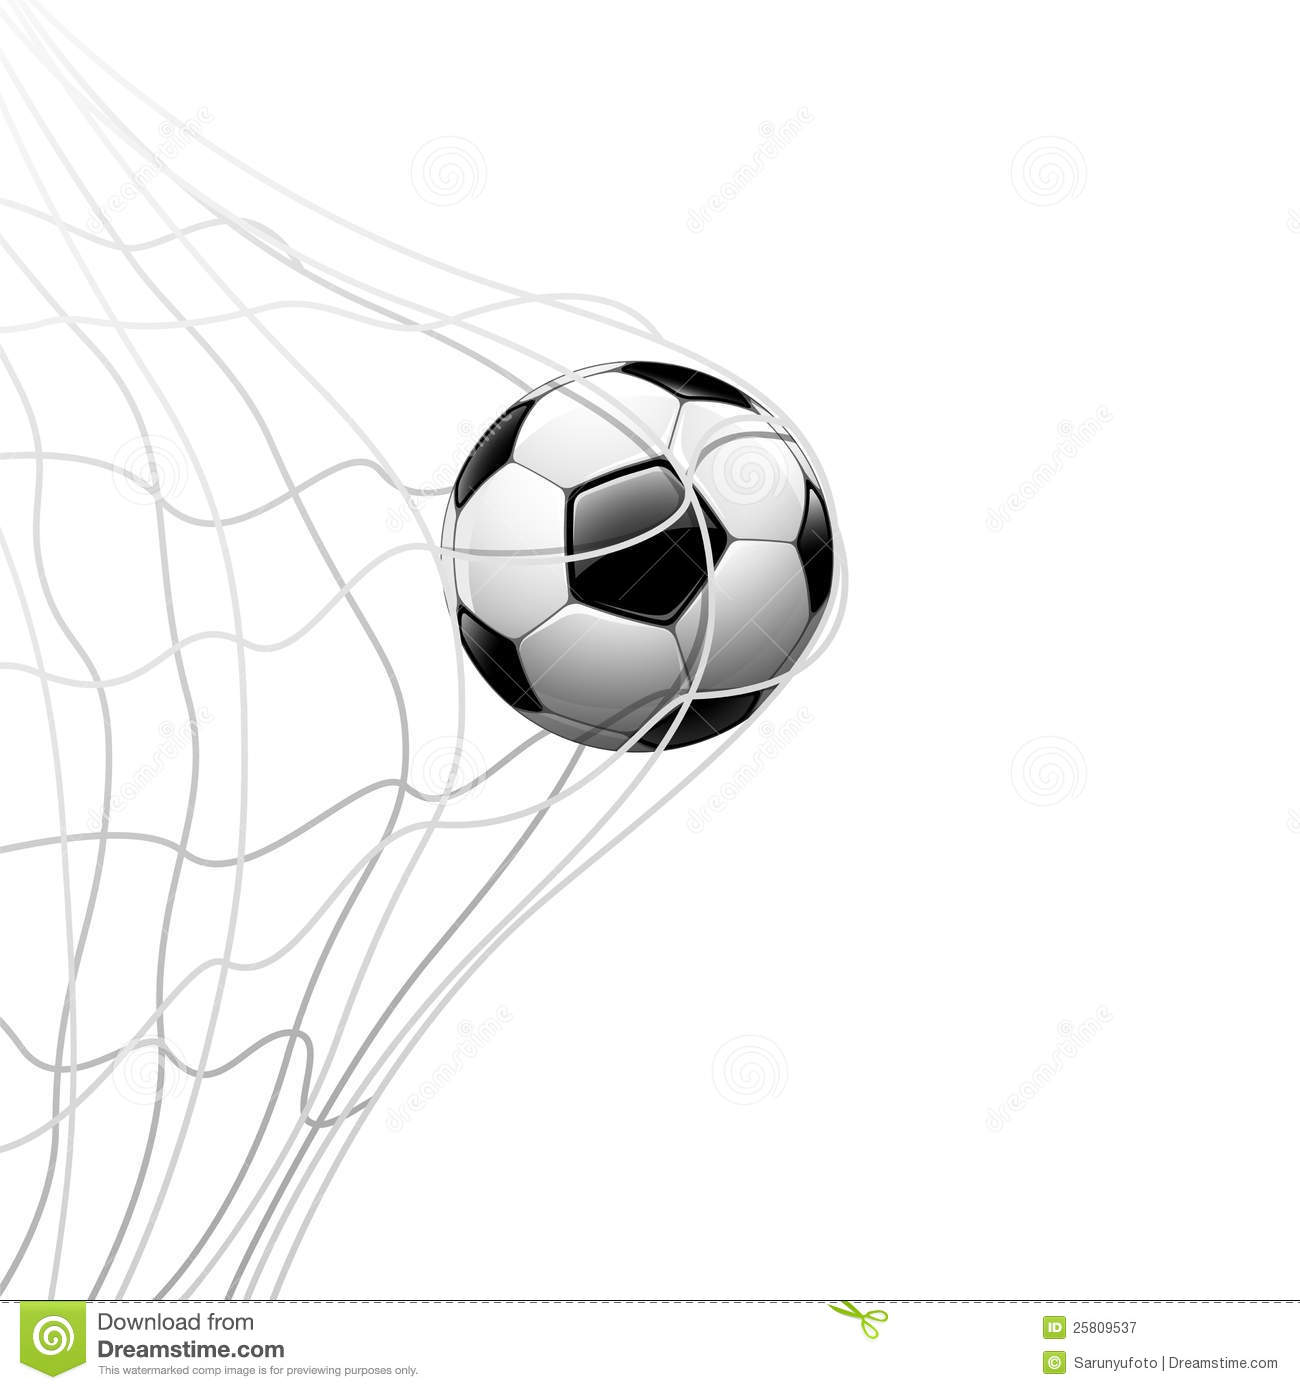 2238 Soccer Ball free clipart.